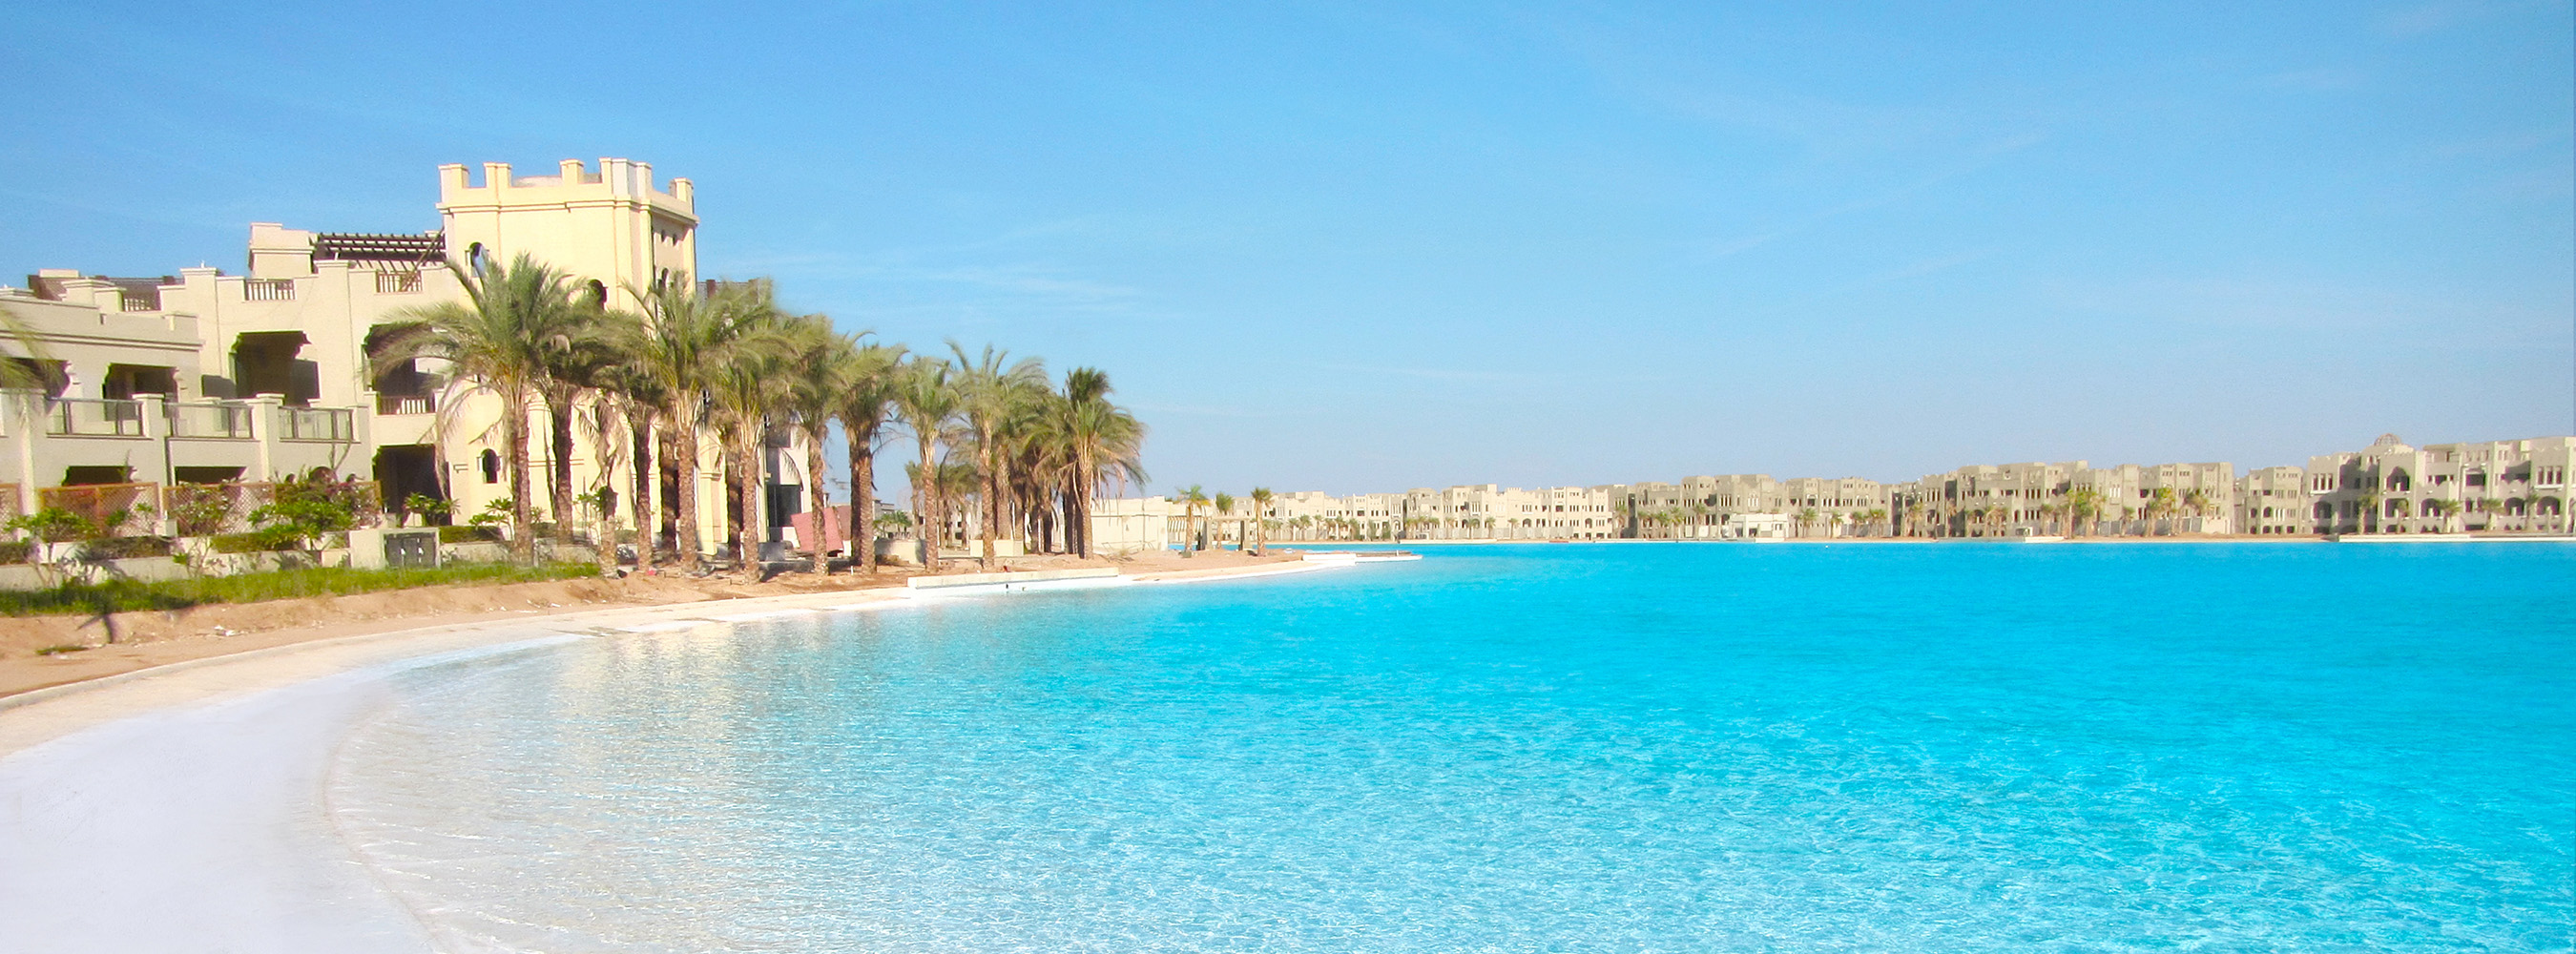 Guinness world record for crystal lagoons egypt project - Egyptian club dubai swimming pool ...